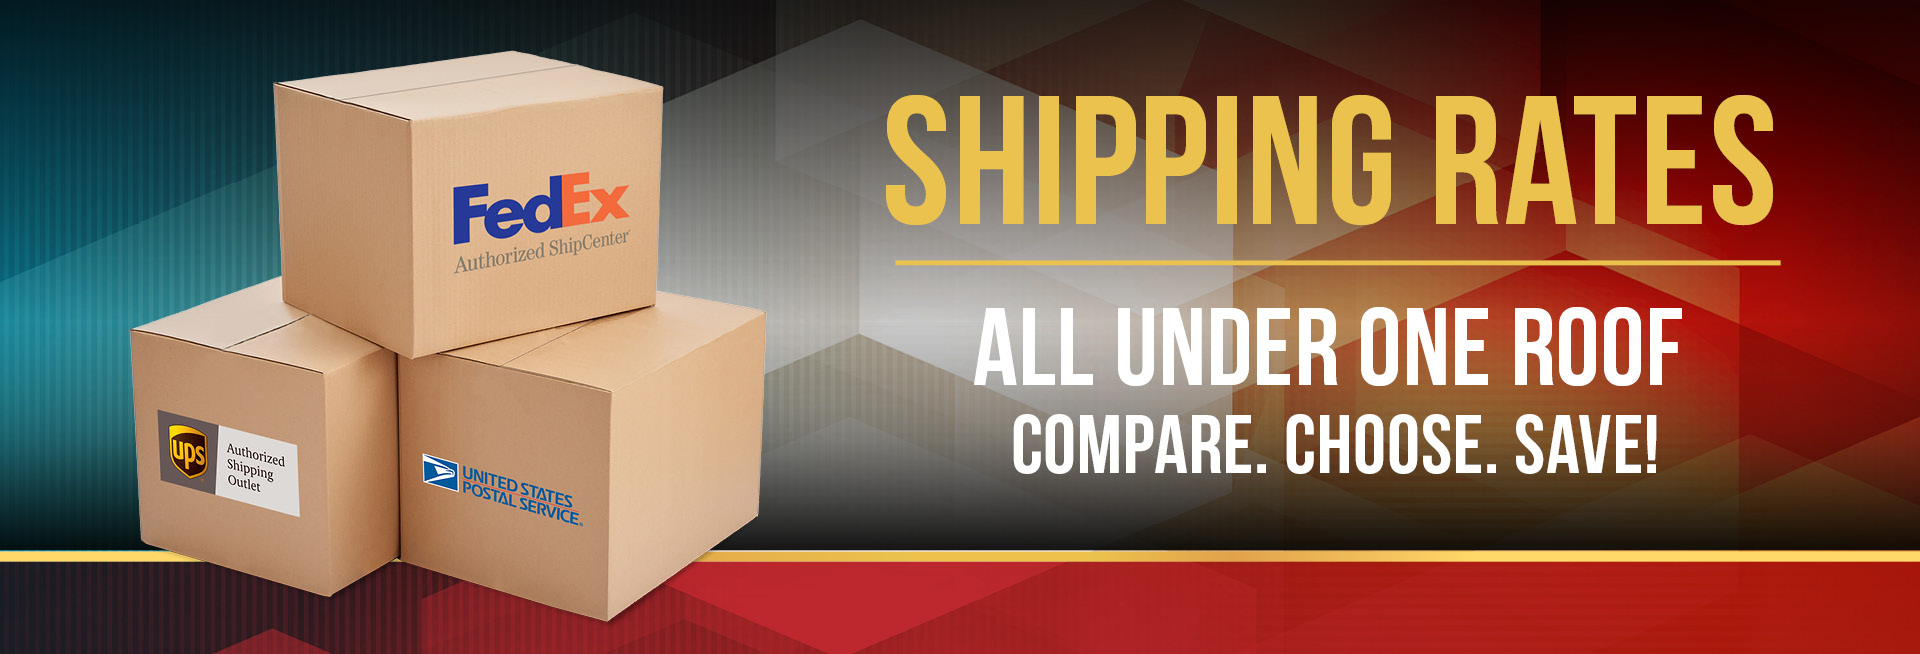 Shipping Rates - All Under One Roof - Compare. Choose Save!